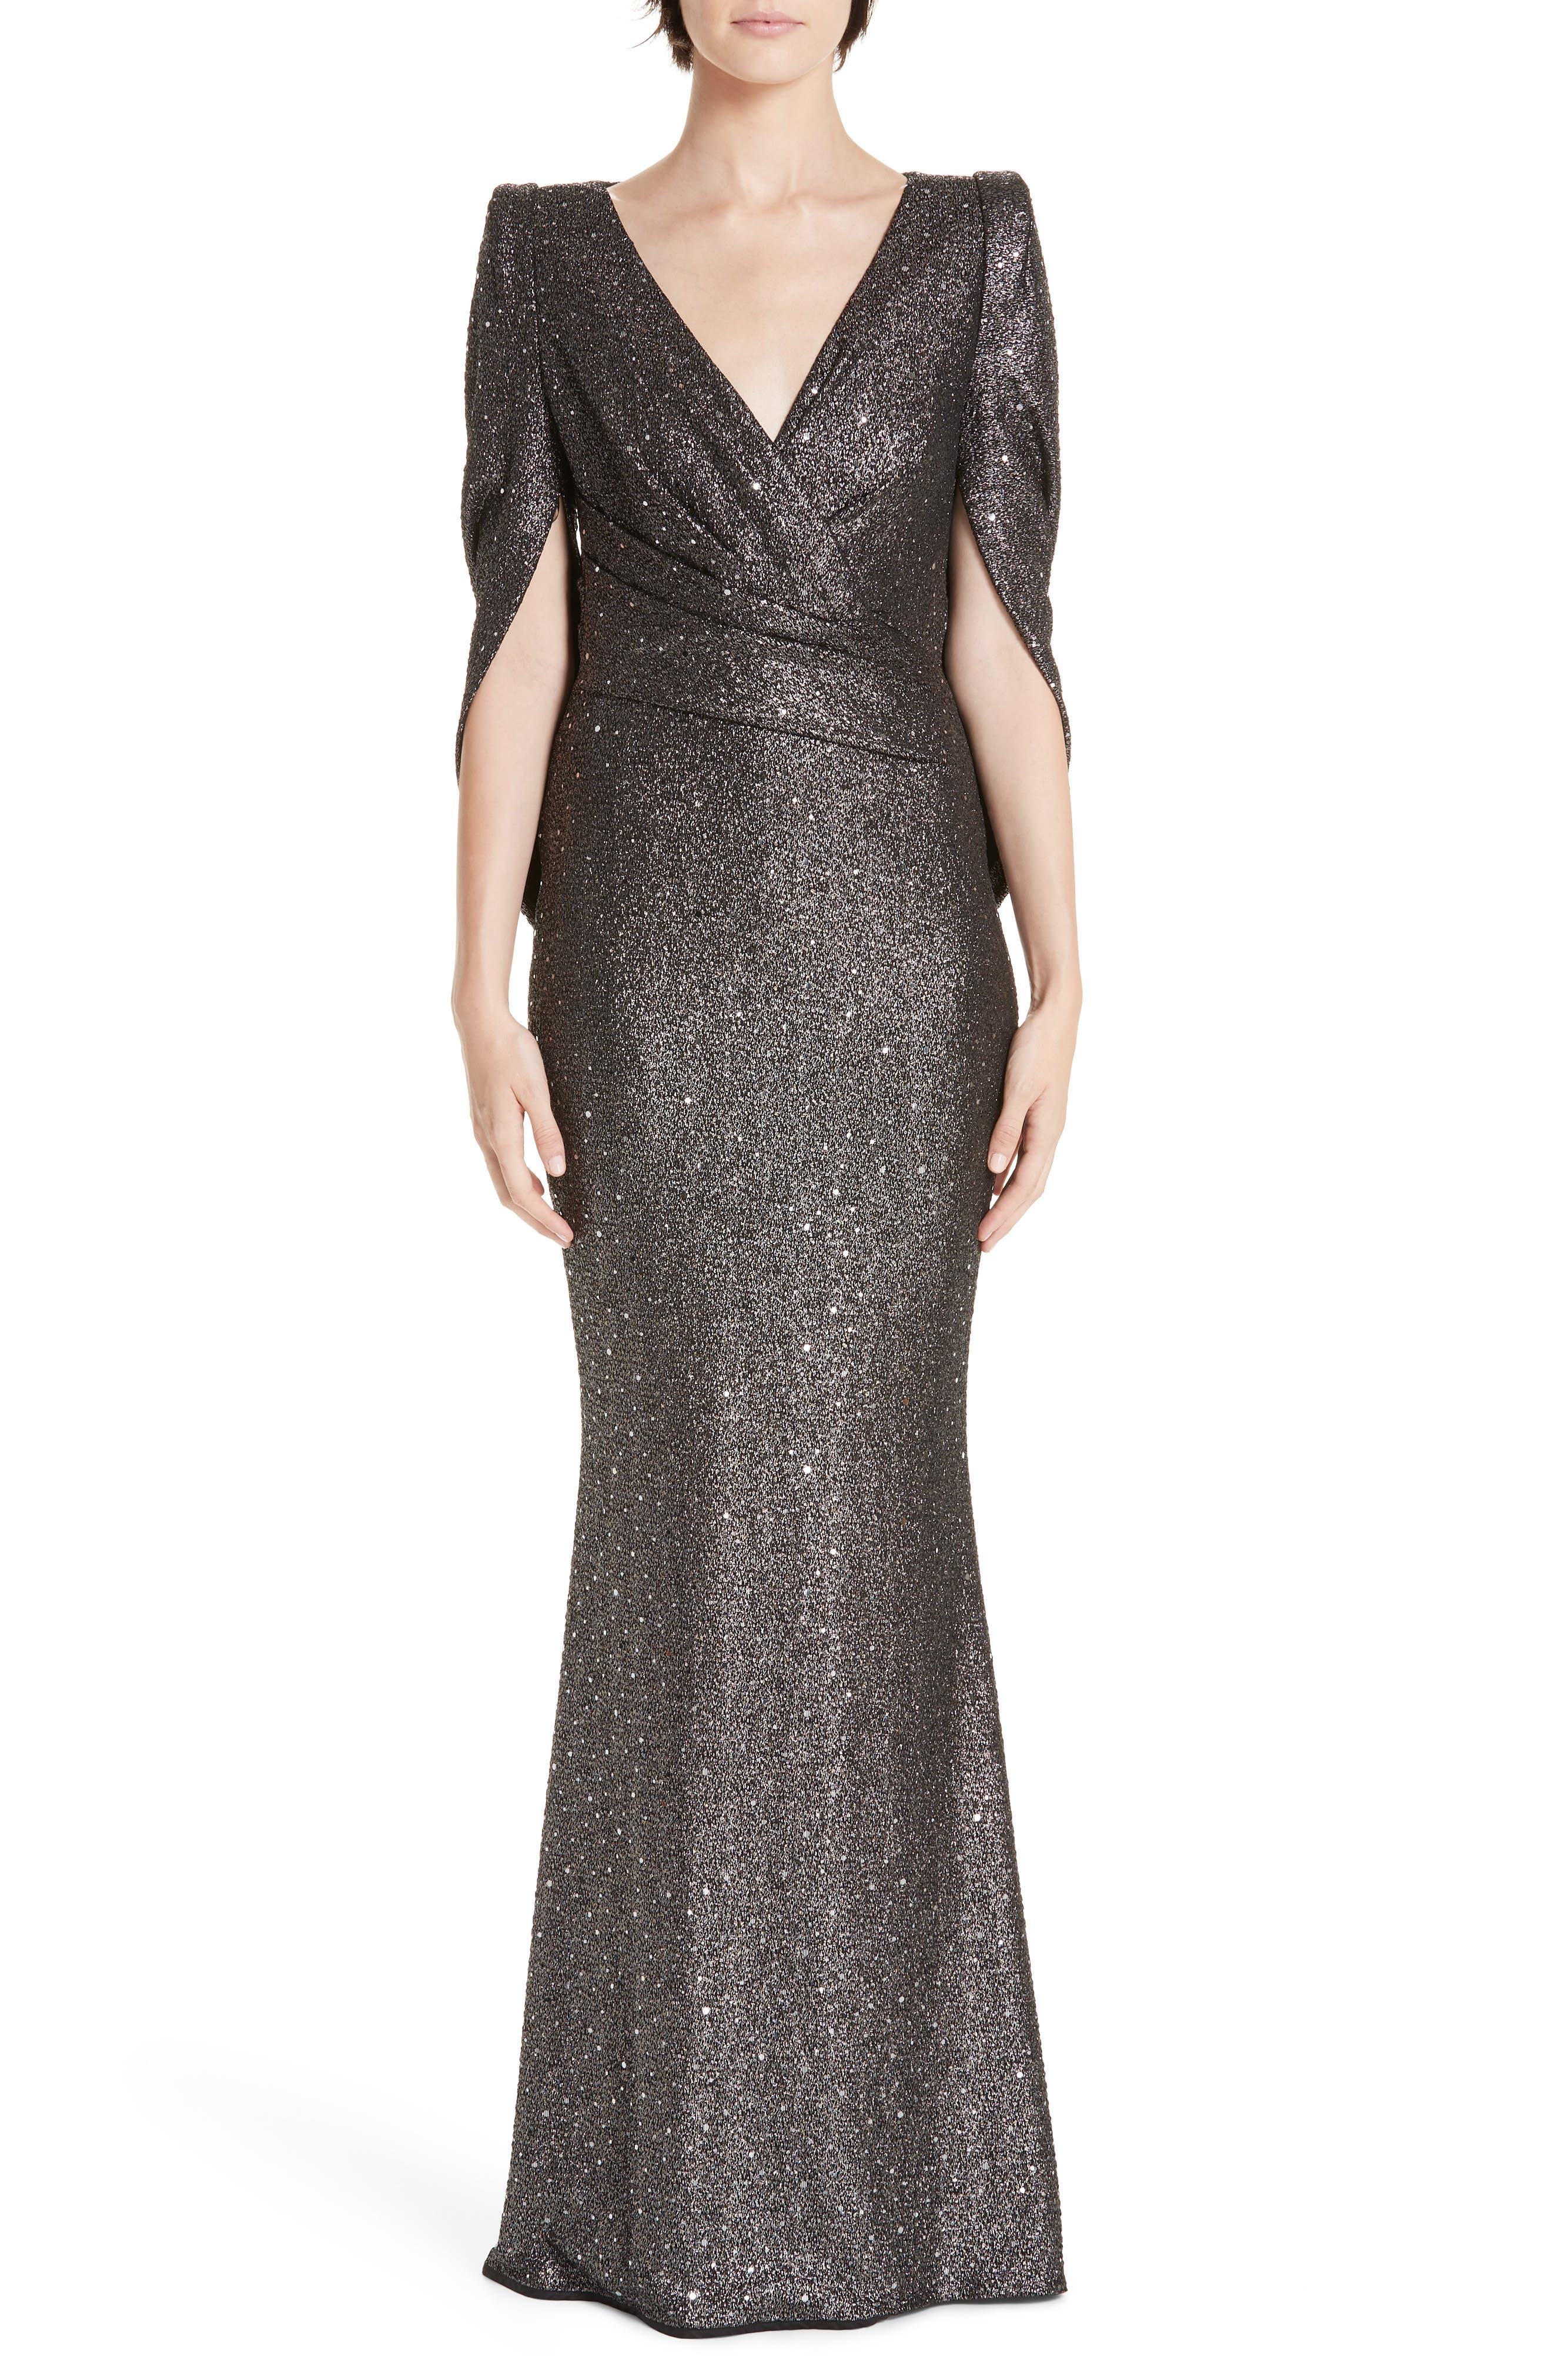 TALBOT RUNHOF V-Neck Cape-Sleeve Embellished Trumpet Evening Gown in Silver